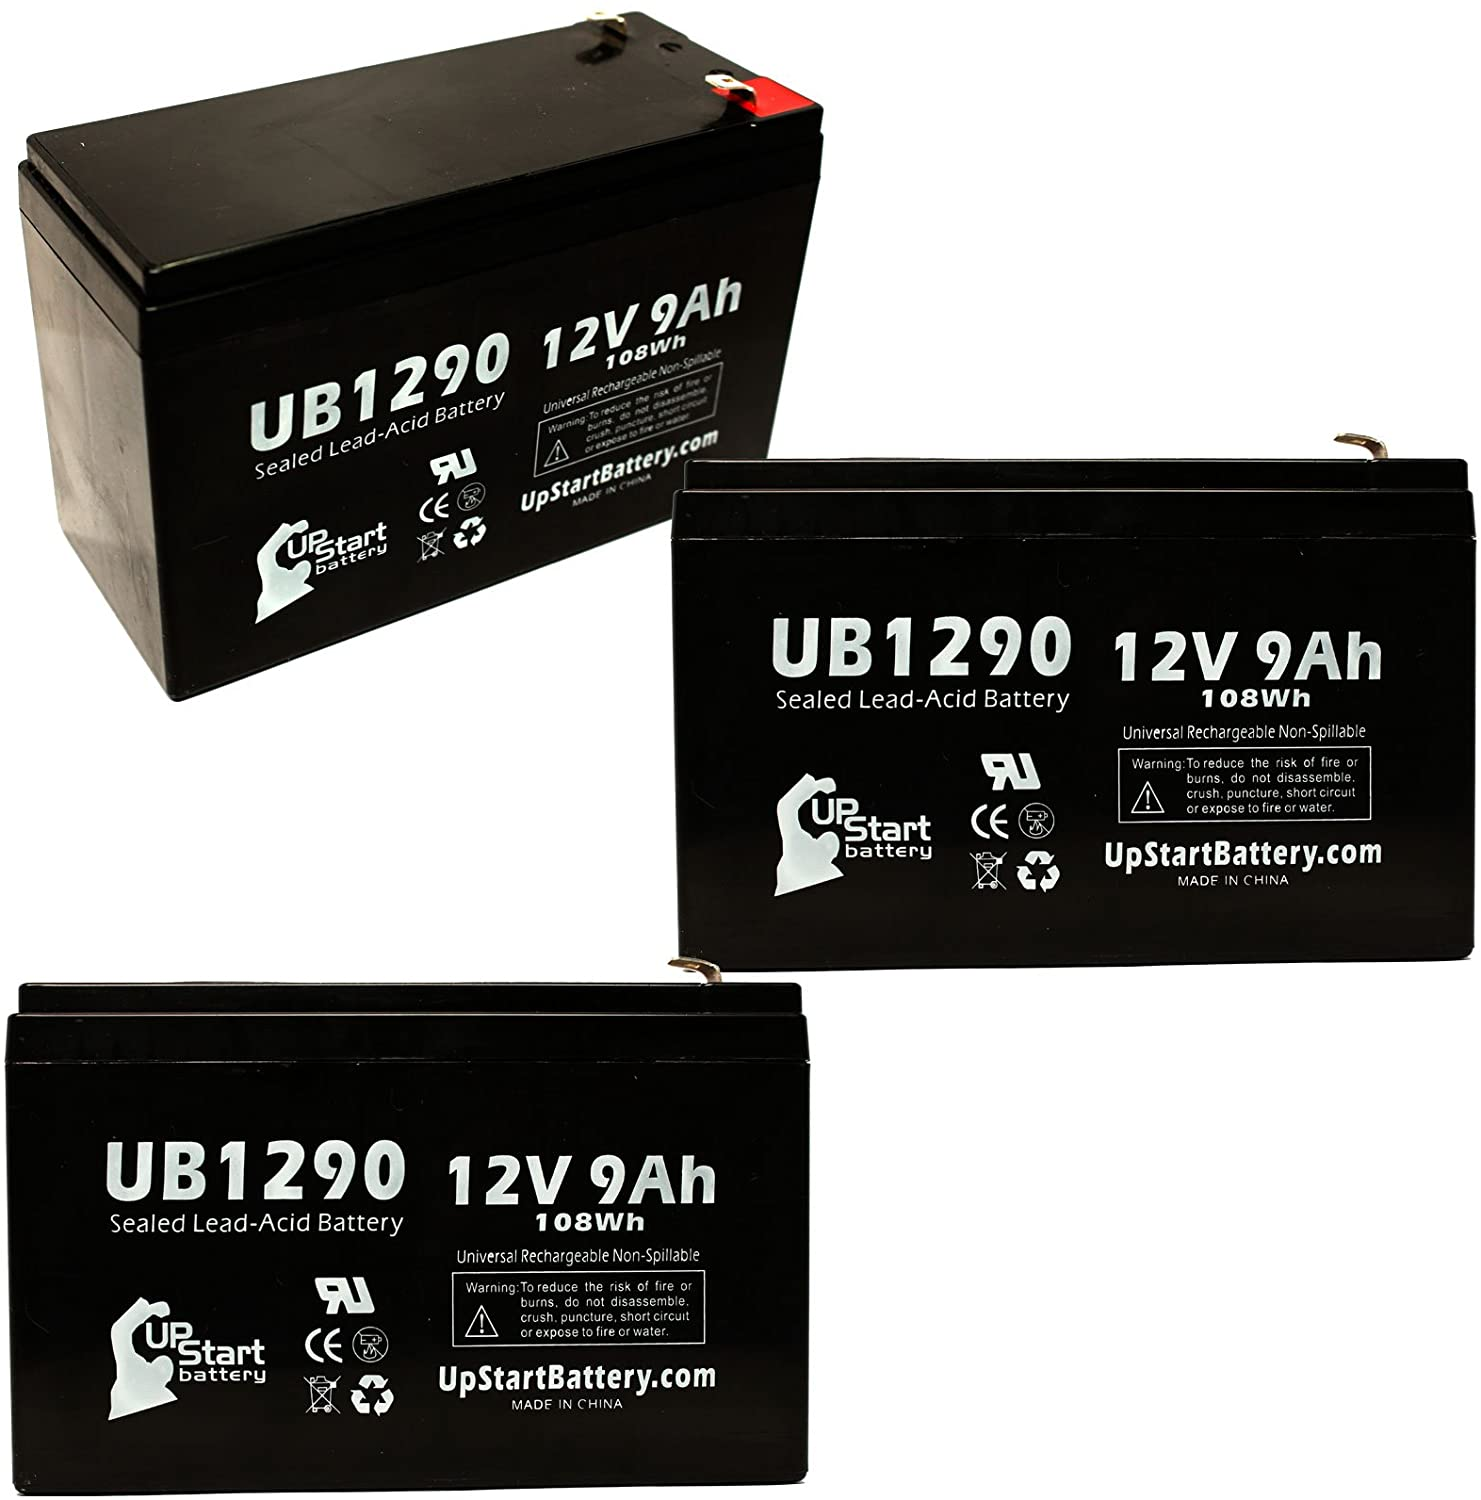 3 Pack Replacement for Emergi-lite 12JSM36 Battery - Replacement UB1290 Universal Sealed Lead Acid Battery (12V, 9Ah, 9000mAh, F1 Terminal, AGM, SLA) - Includes 6 F1 to F2 Terminal Adapters